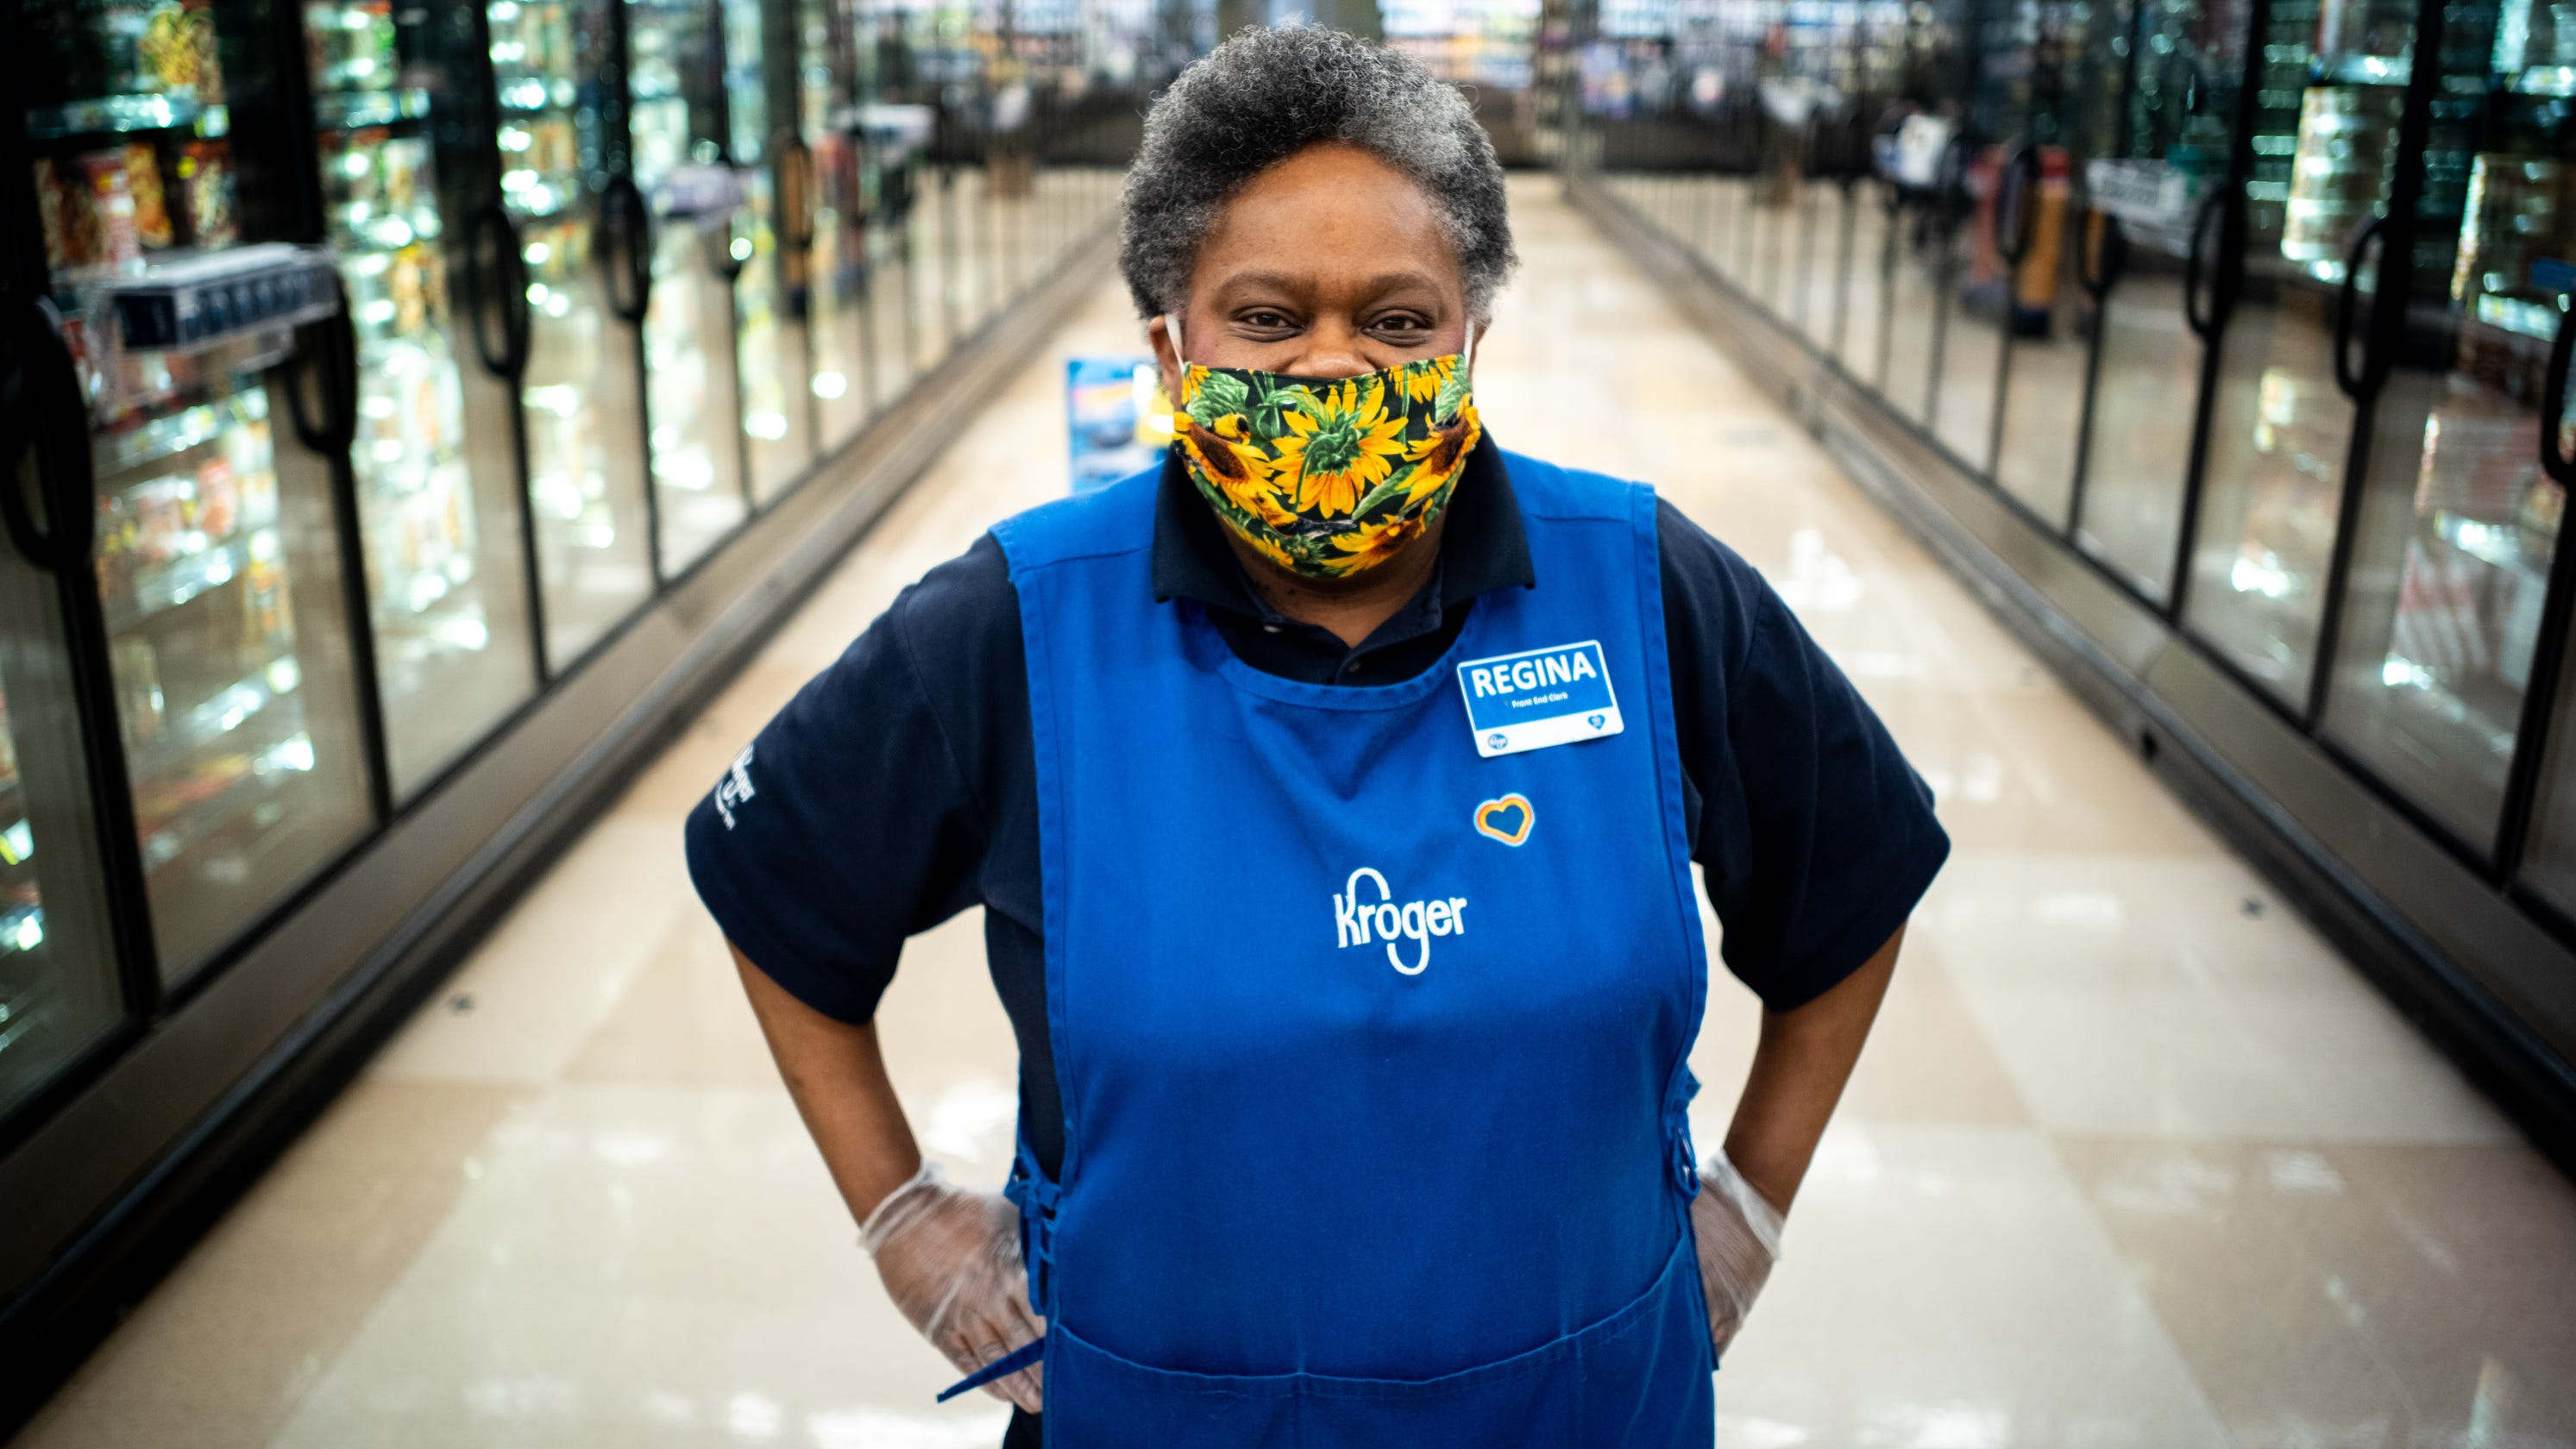 'Everybody in here loves her': Popular grocery store worker keeps shining through the pandemic